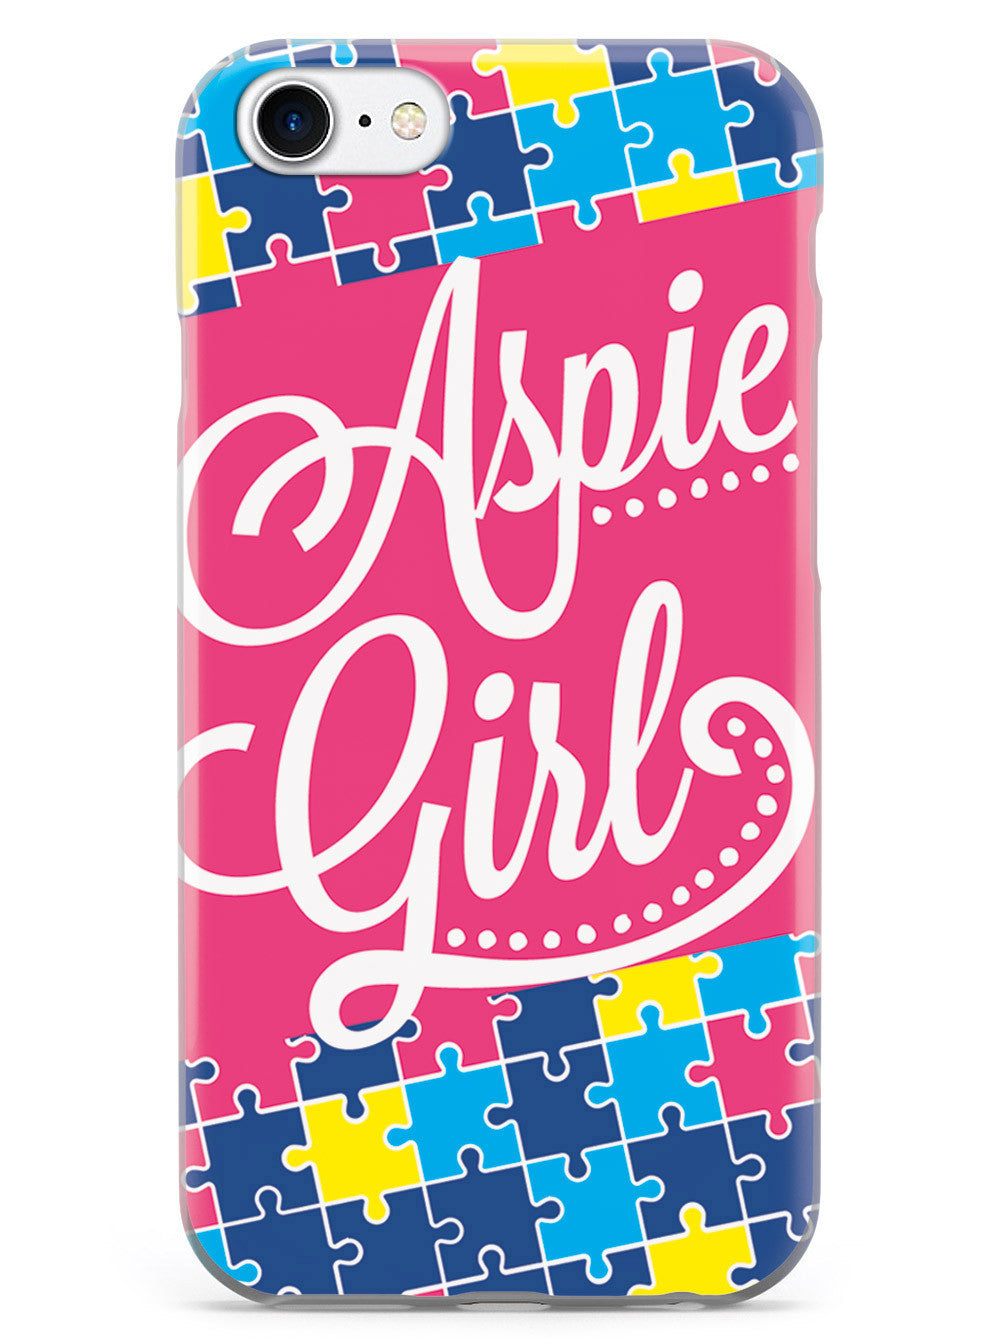 Aspie Girl - Asperger's Syndrome Case